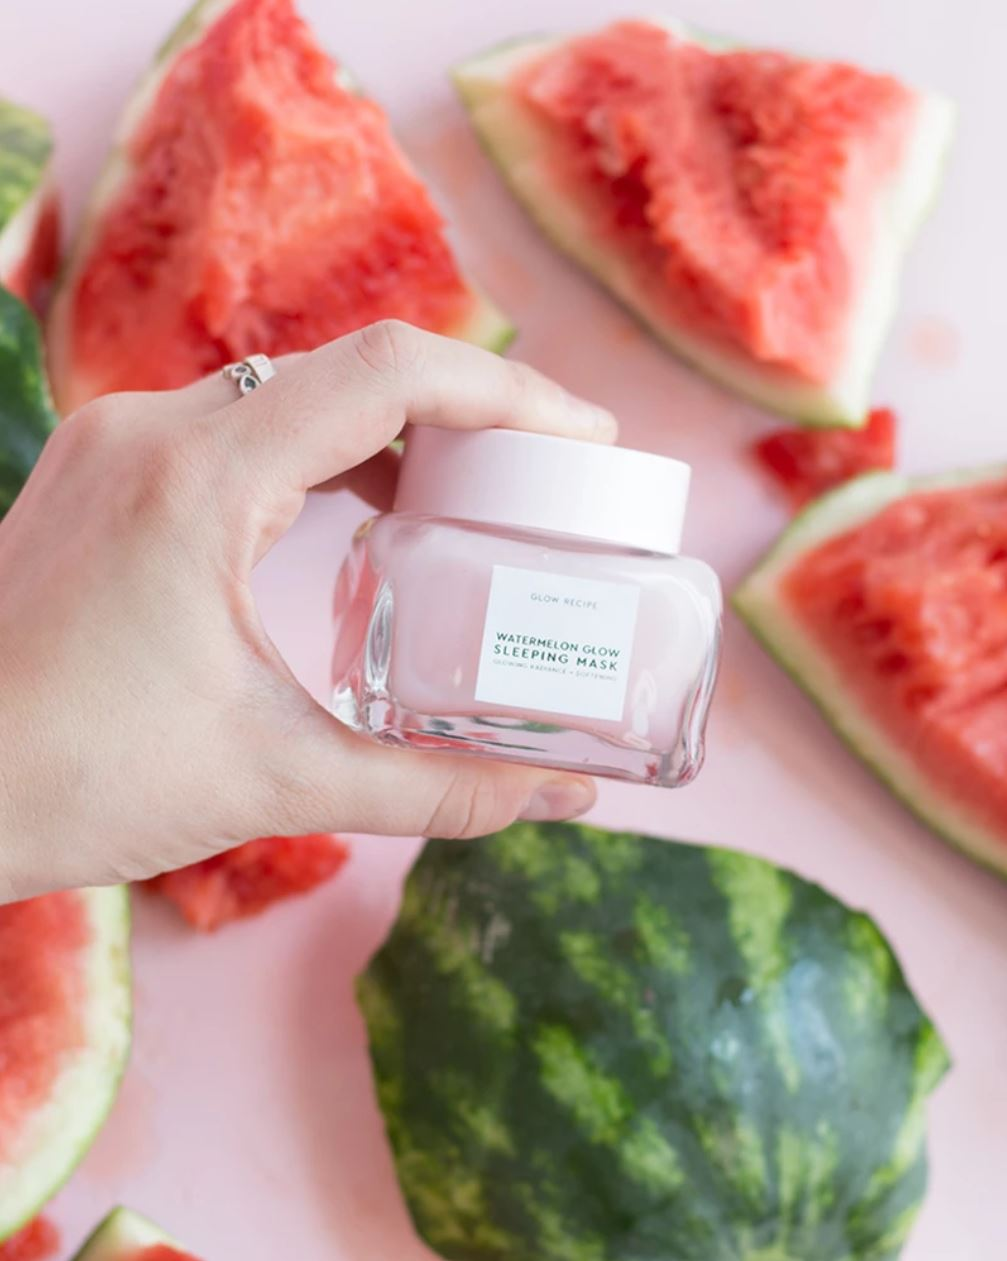 Check out Glow Recipe's Watermelon Glow Sleeping Mask